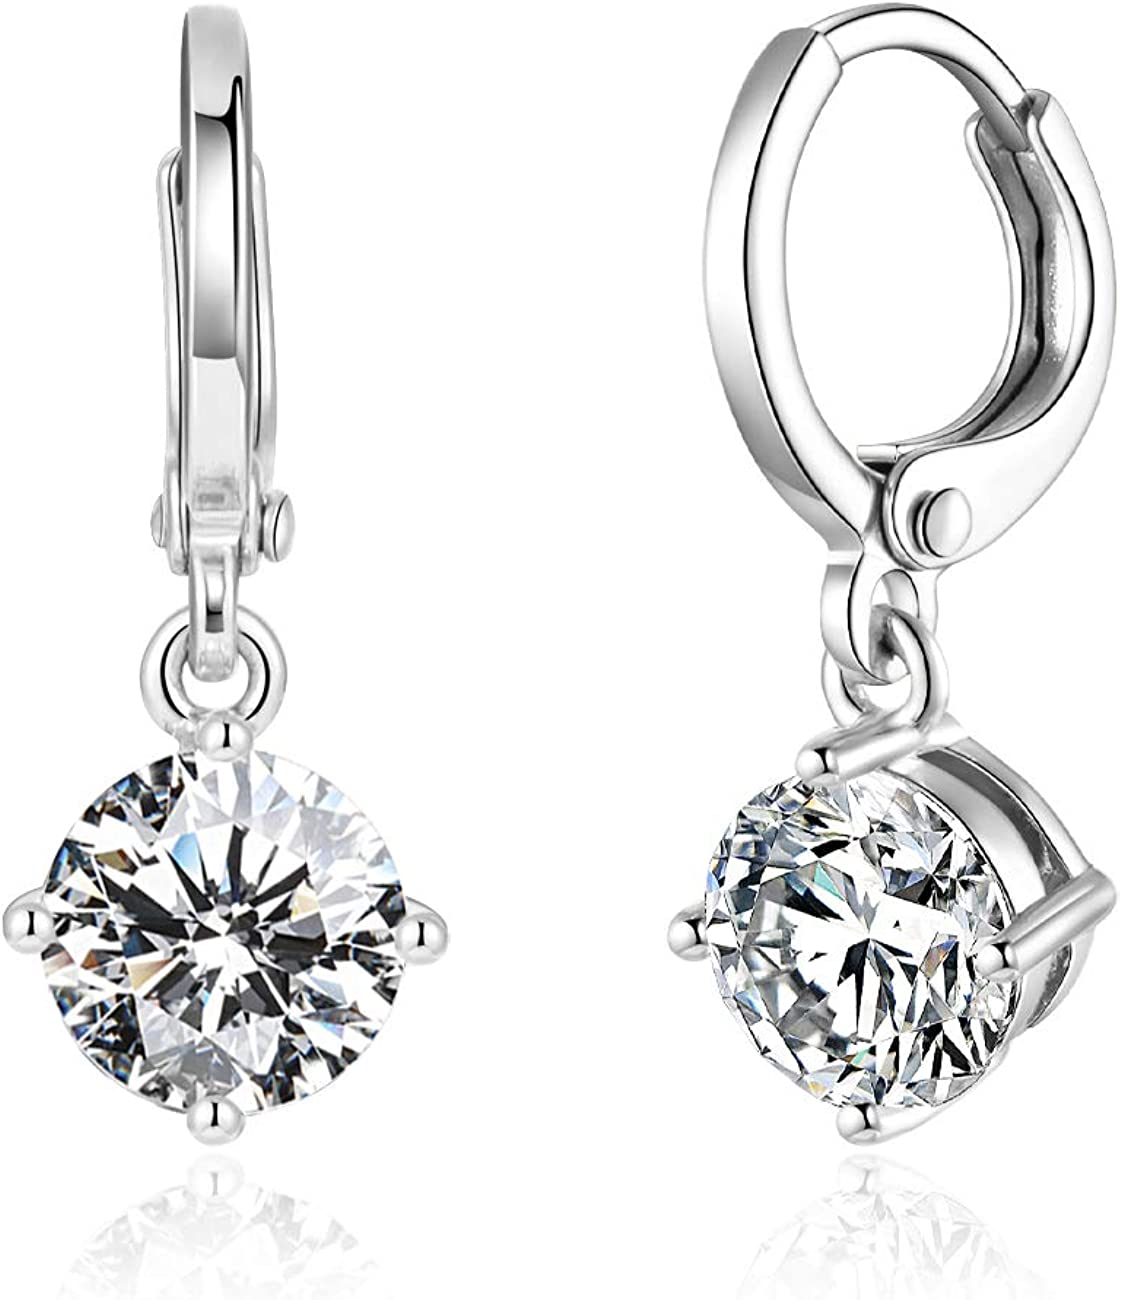 Drop Dangle Earrings Leverback 7MM 1.25ct CZ Cubic Zirconia design 18K White Gold Plated With Small Hypoallergenic Hoops Gorgeous Gift for Women and Girls